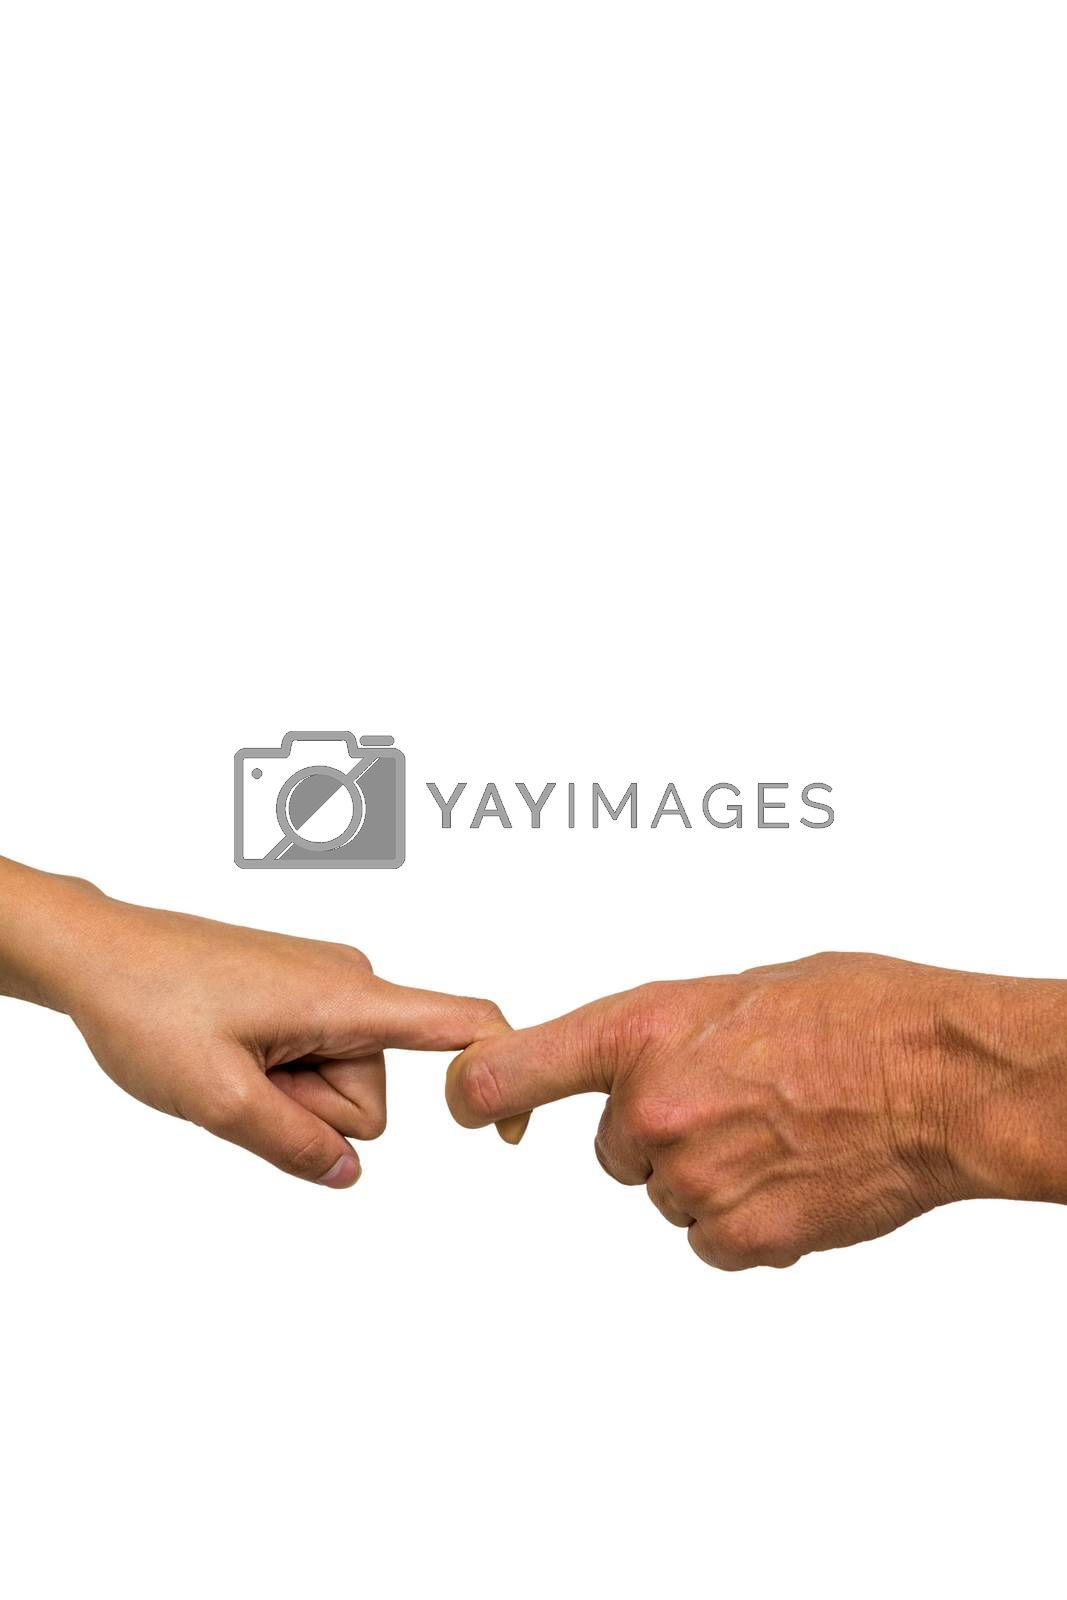 Cropped hands of people holding fingers against white background